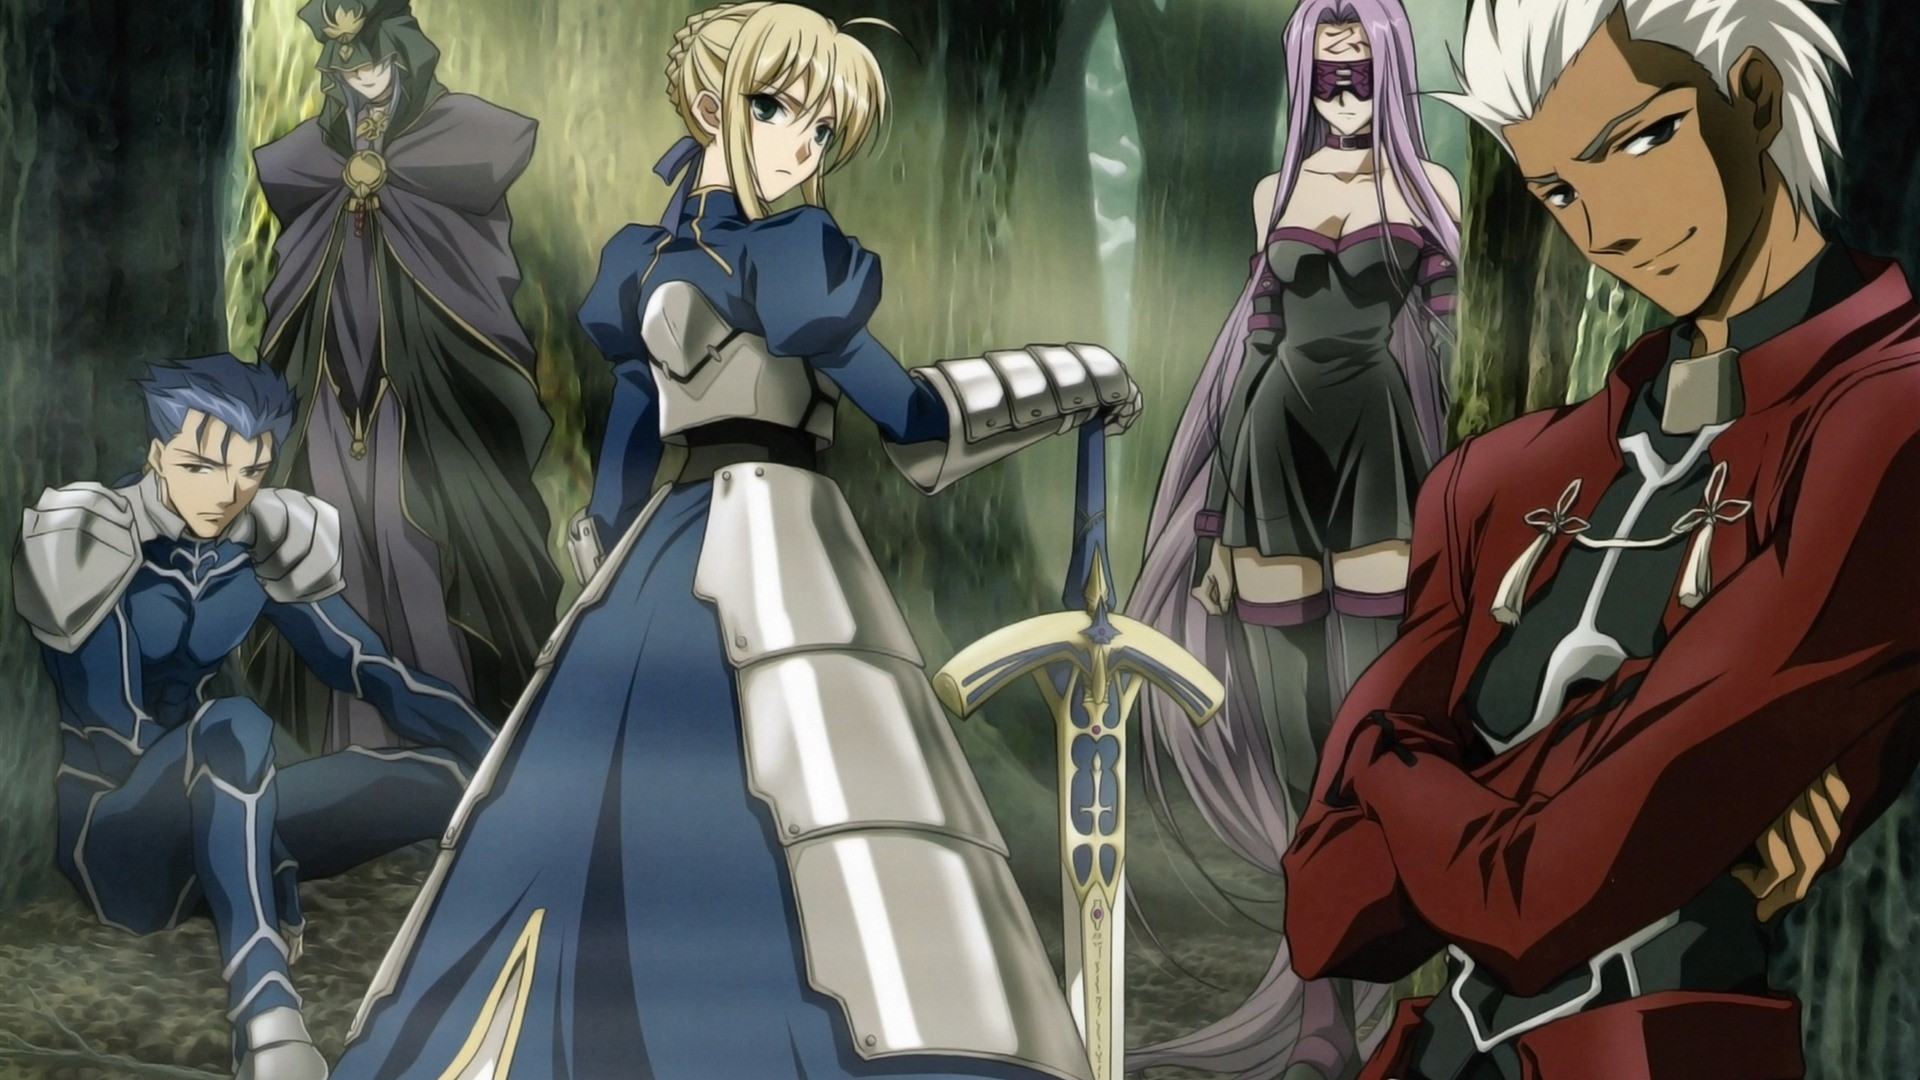 Anime – Fate/Stay Night Saber (Fate Series) Archer (Fate/Stay